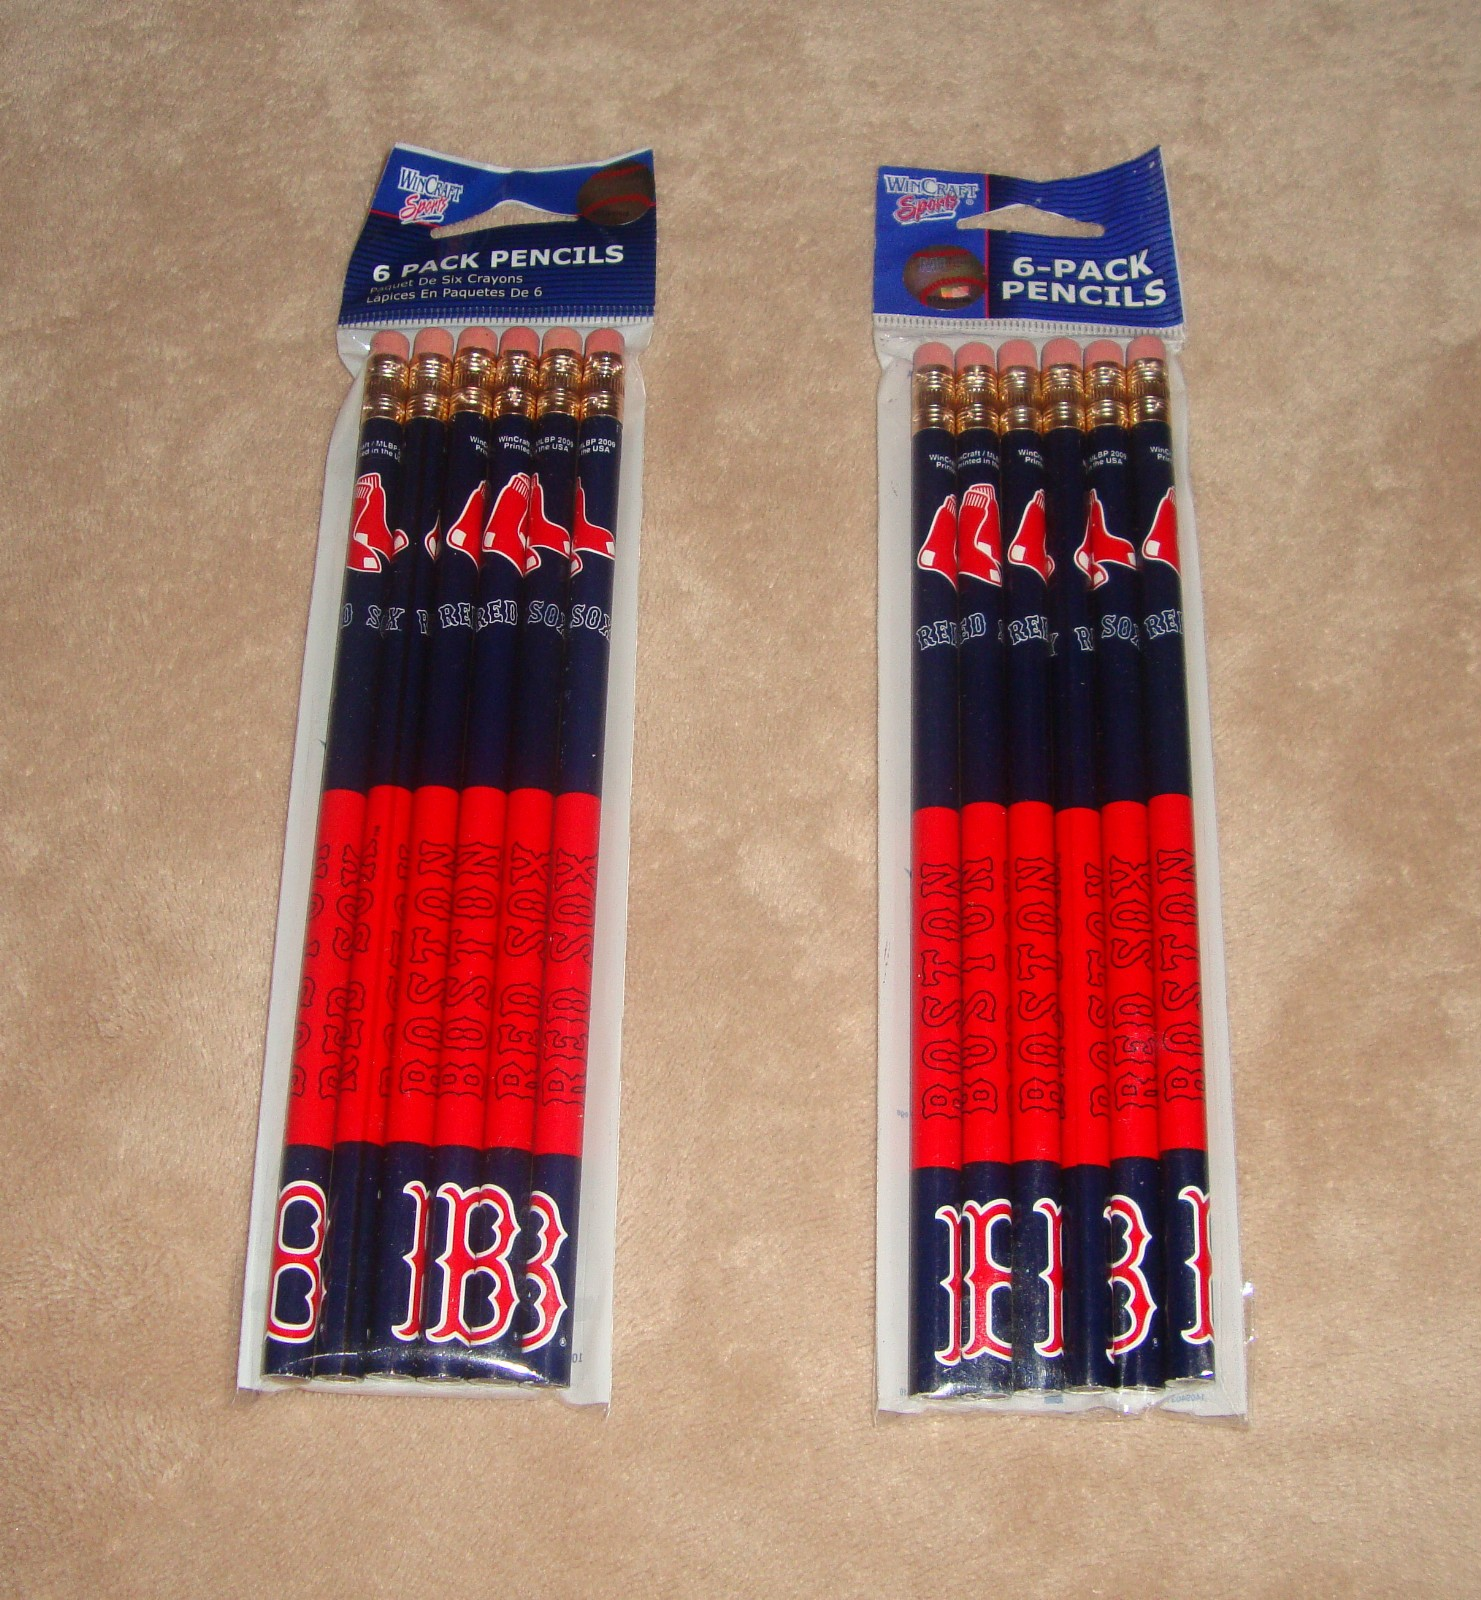 Boston Red Sox Pencils 6 Pack